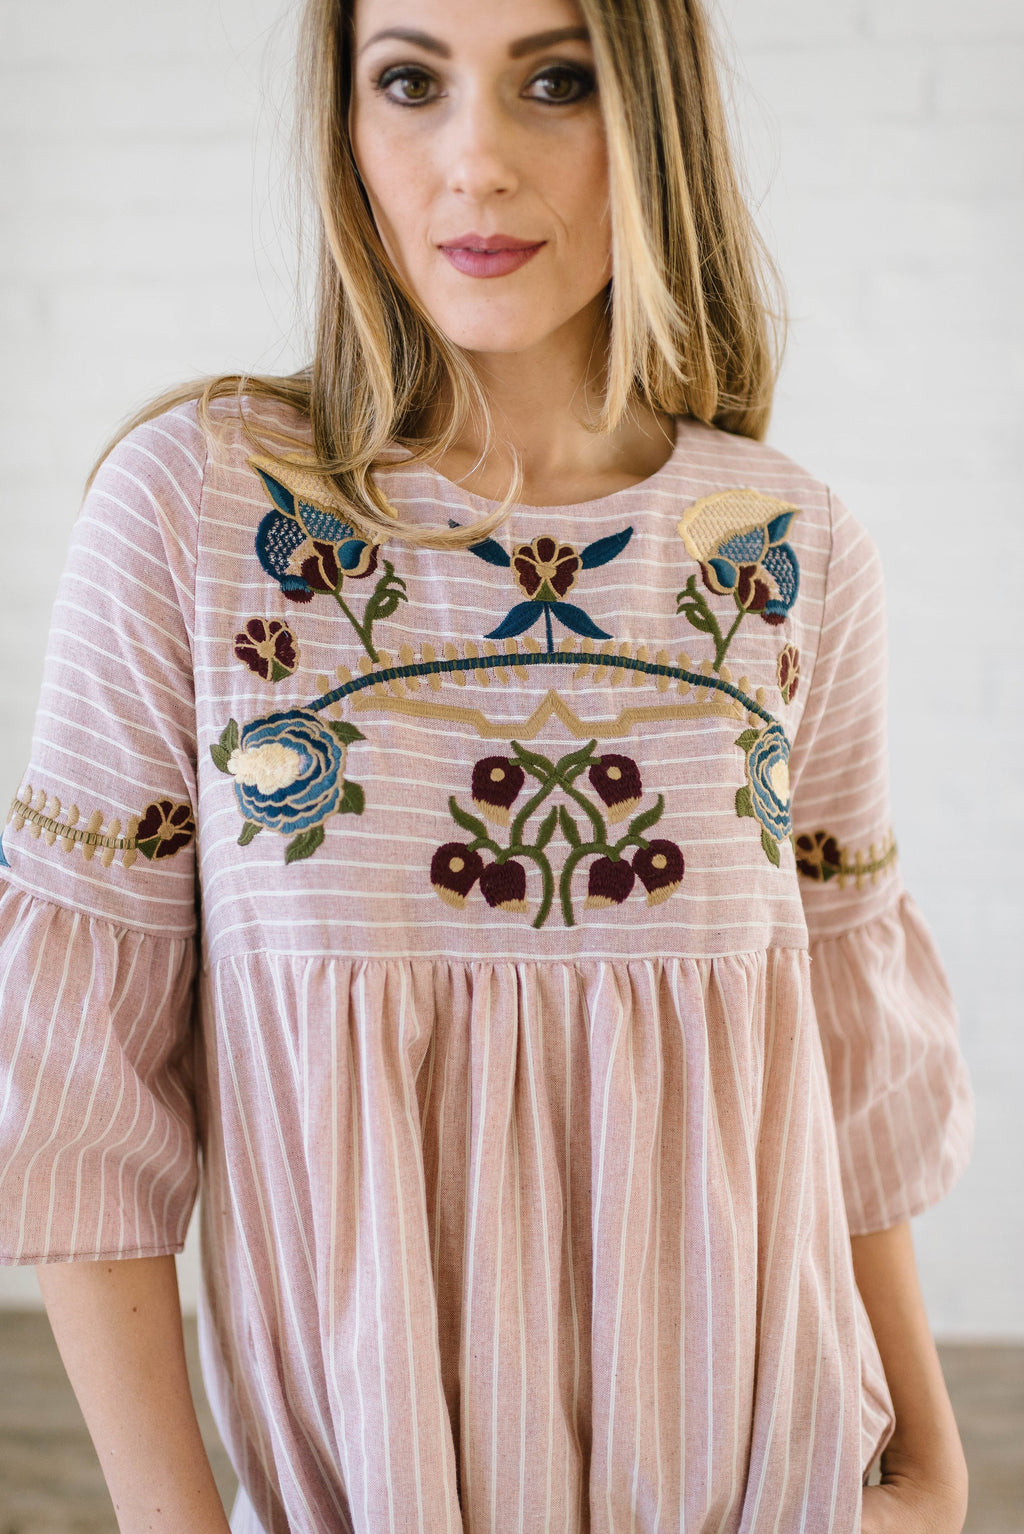 The Emerson Embroidered Dress In Light Pink - Warehouse Sale